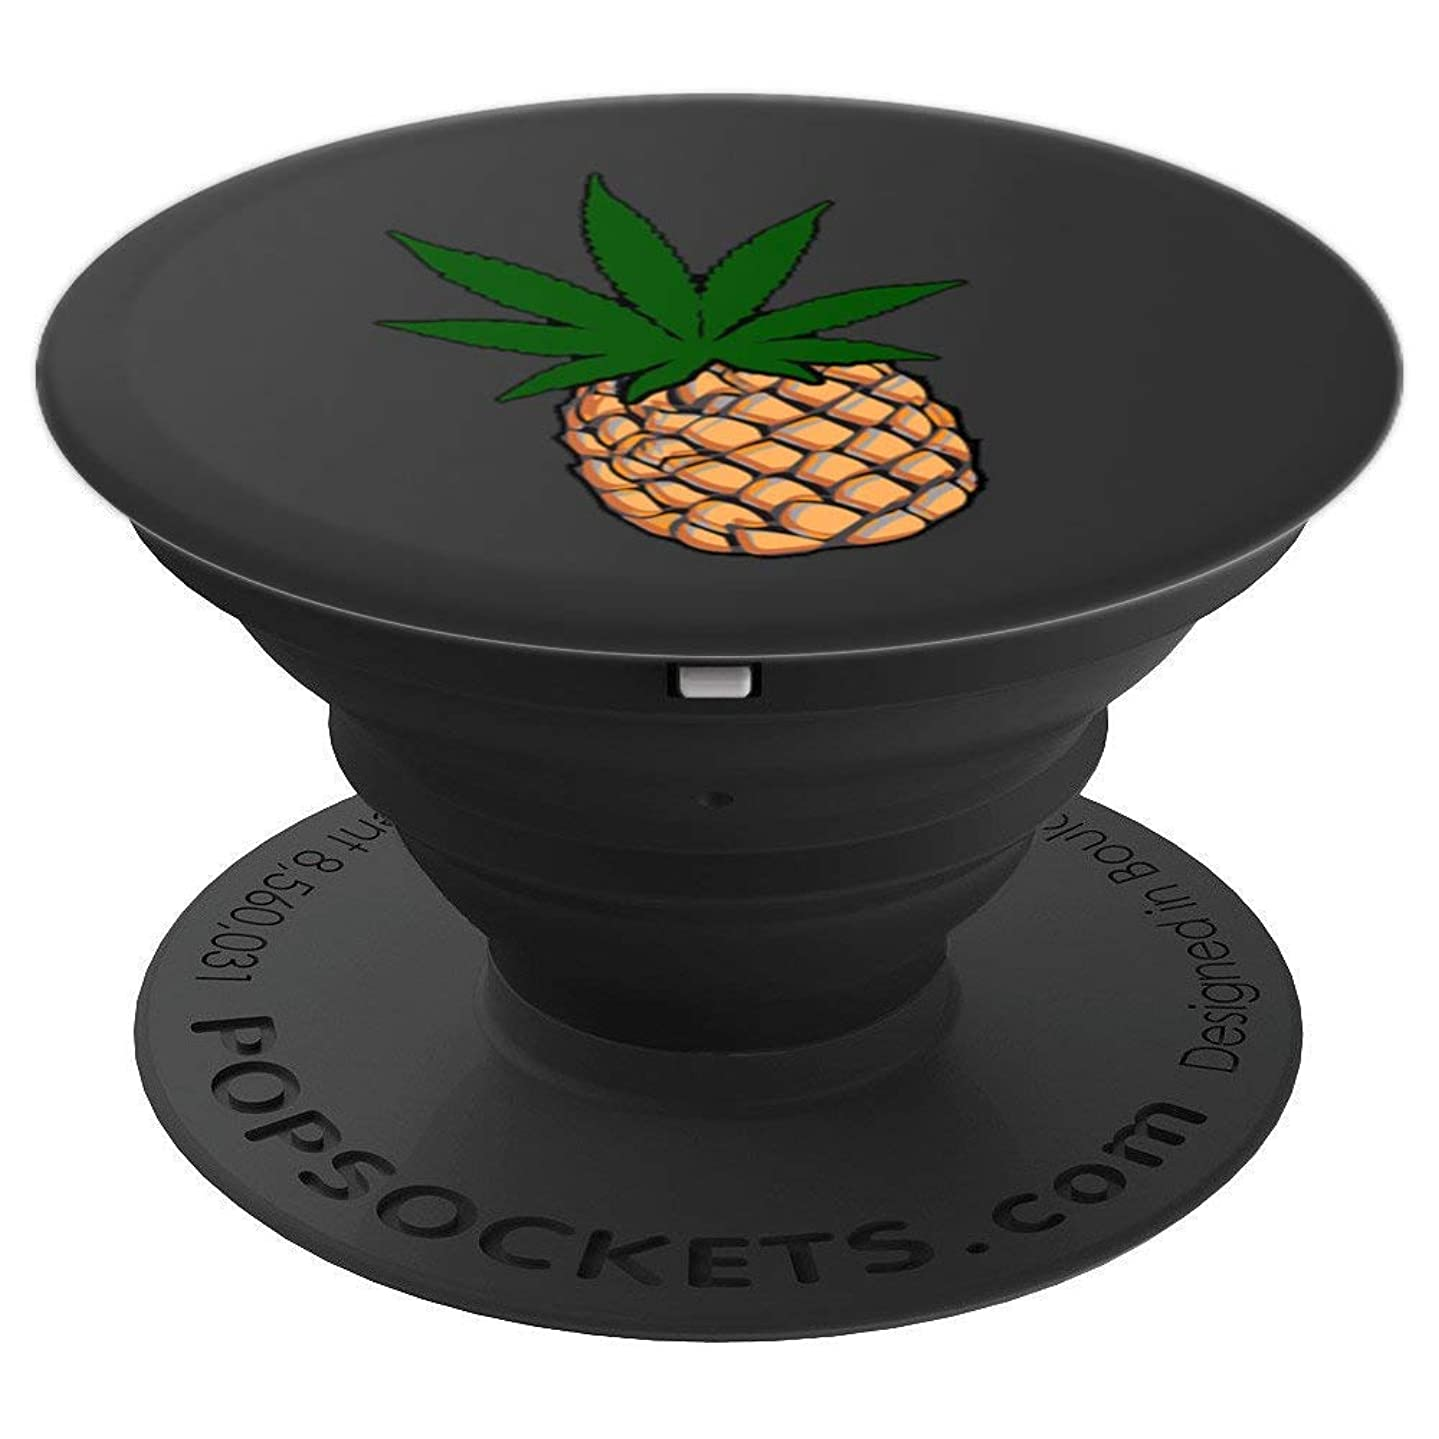 Pineapple express marijuana leaf popsocket weed pot cannabis - PopSockets Grip and Stand for Phones and Tablets